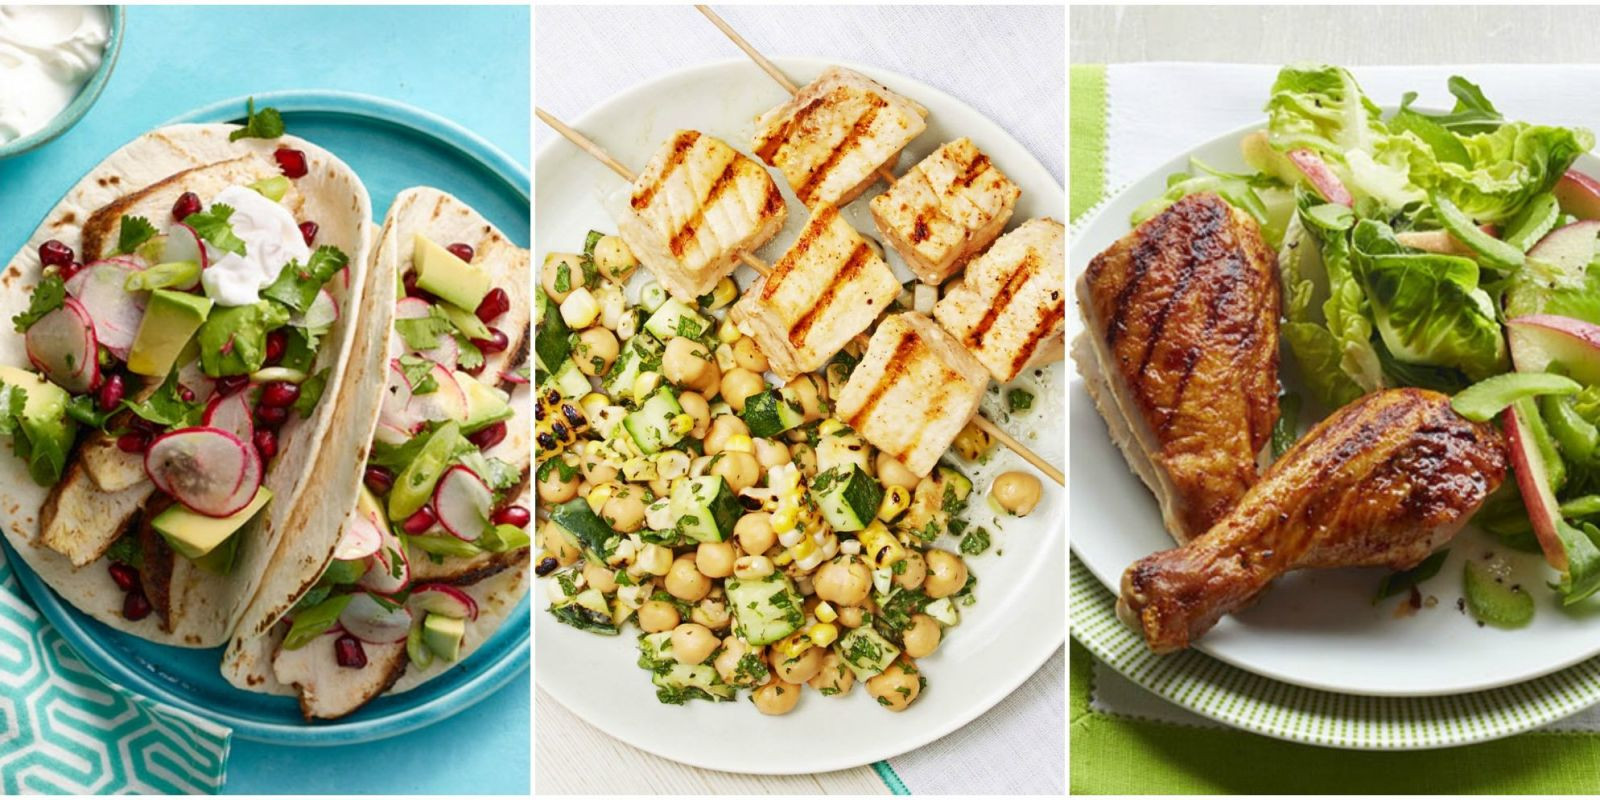 Good Summer Dinners the 20 Best Ideas for 60 Best Summer Dinner Recipes Quick and Easy Summer Meal